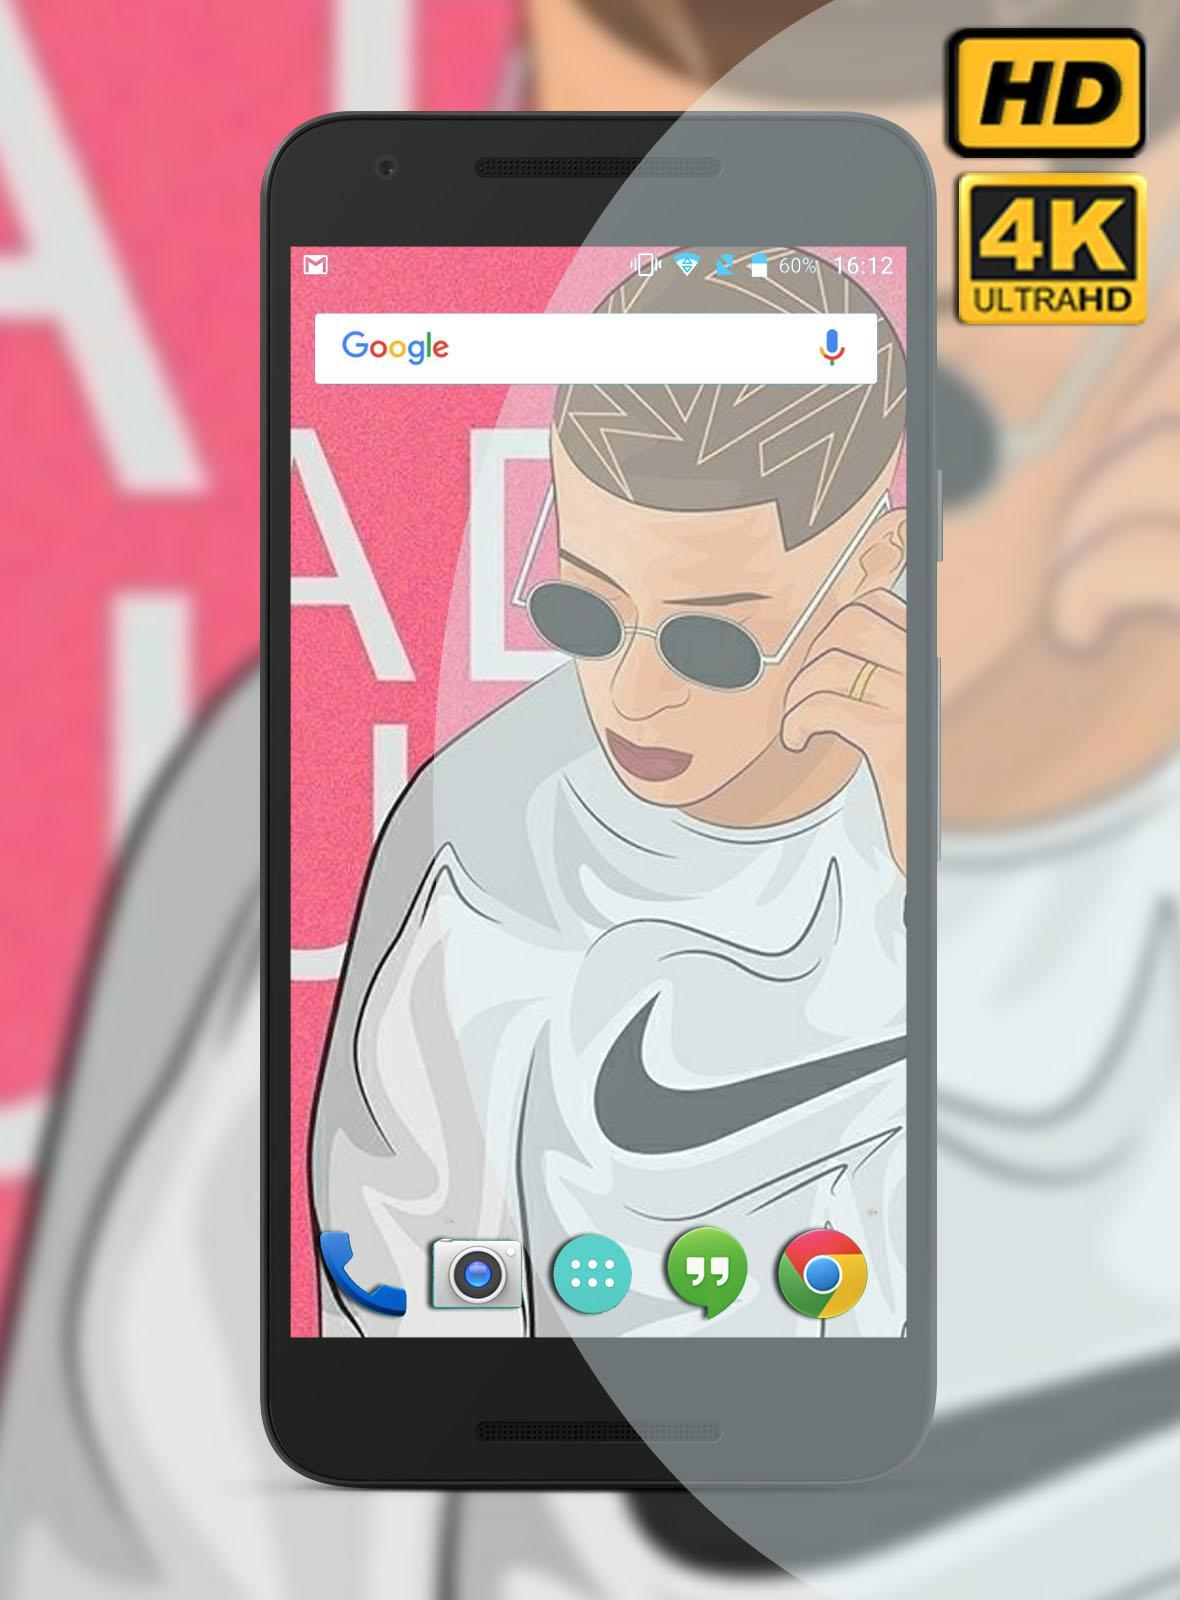 Bad Bunny Wallpaper For Android Apk Download